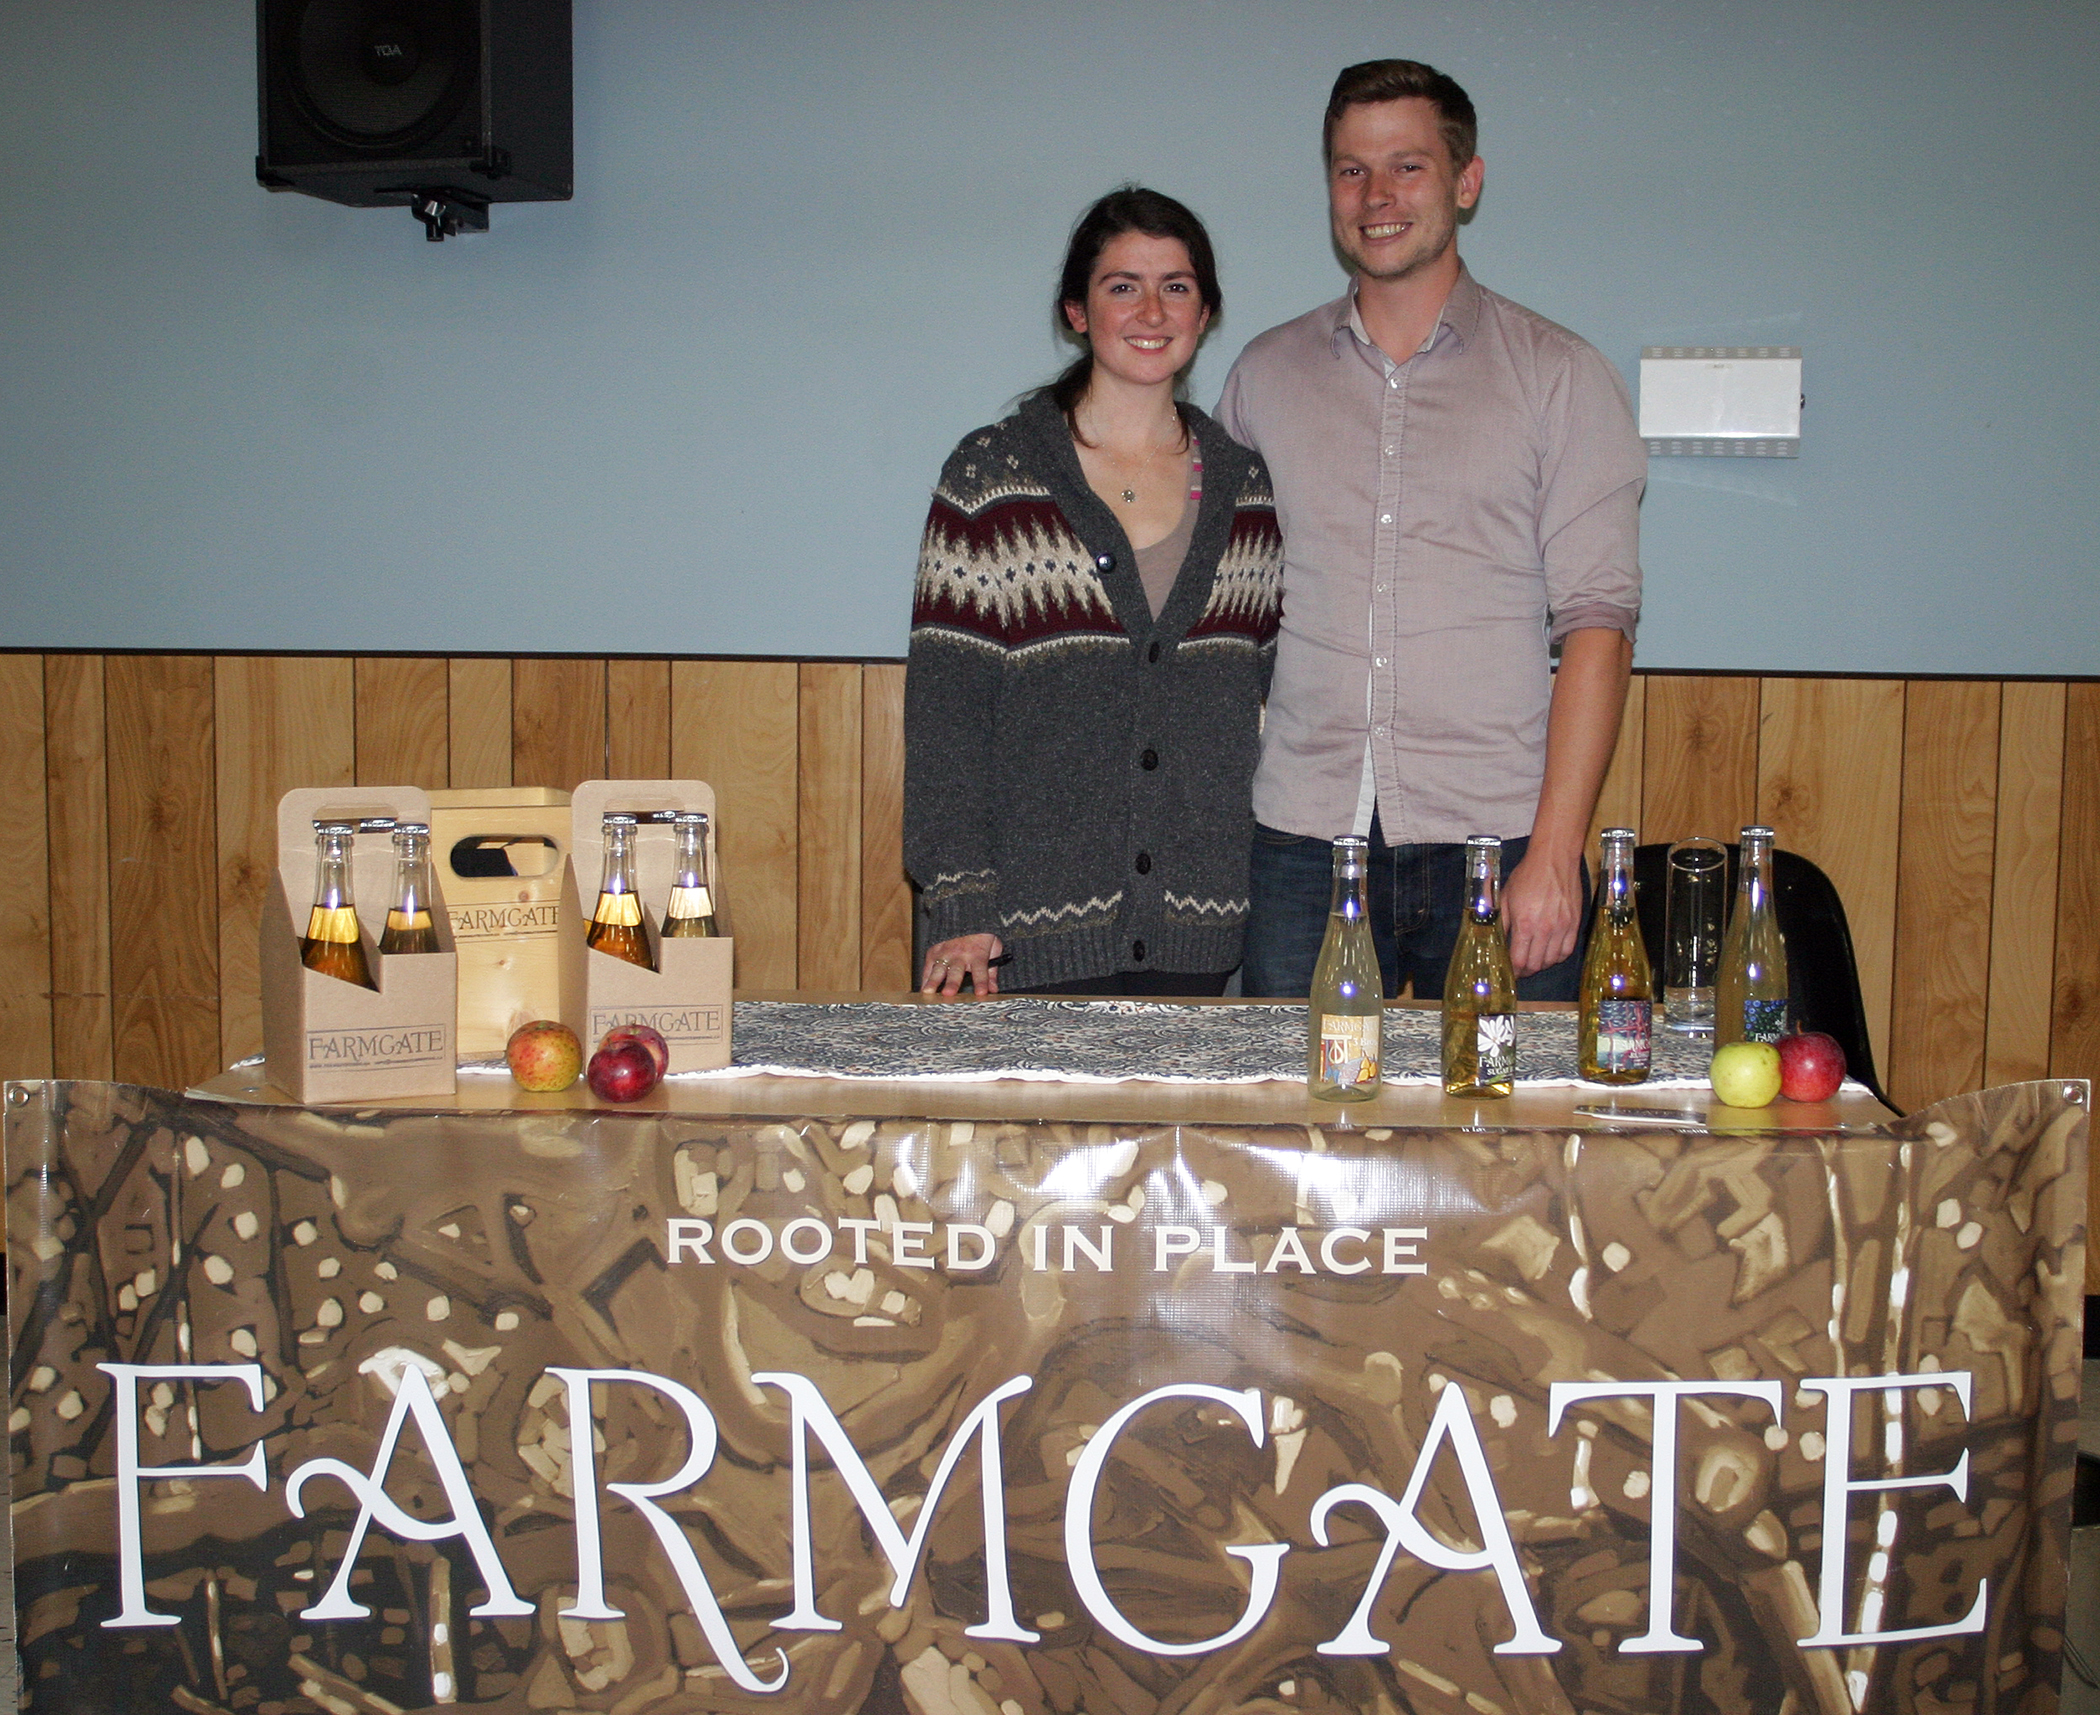 Jacob Davies and  Megan Dalby of Farmgate Cider shared their tasty beverage at last Saturday's Holy Hops Brewfest. Photo by Jake Davies